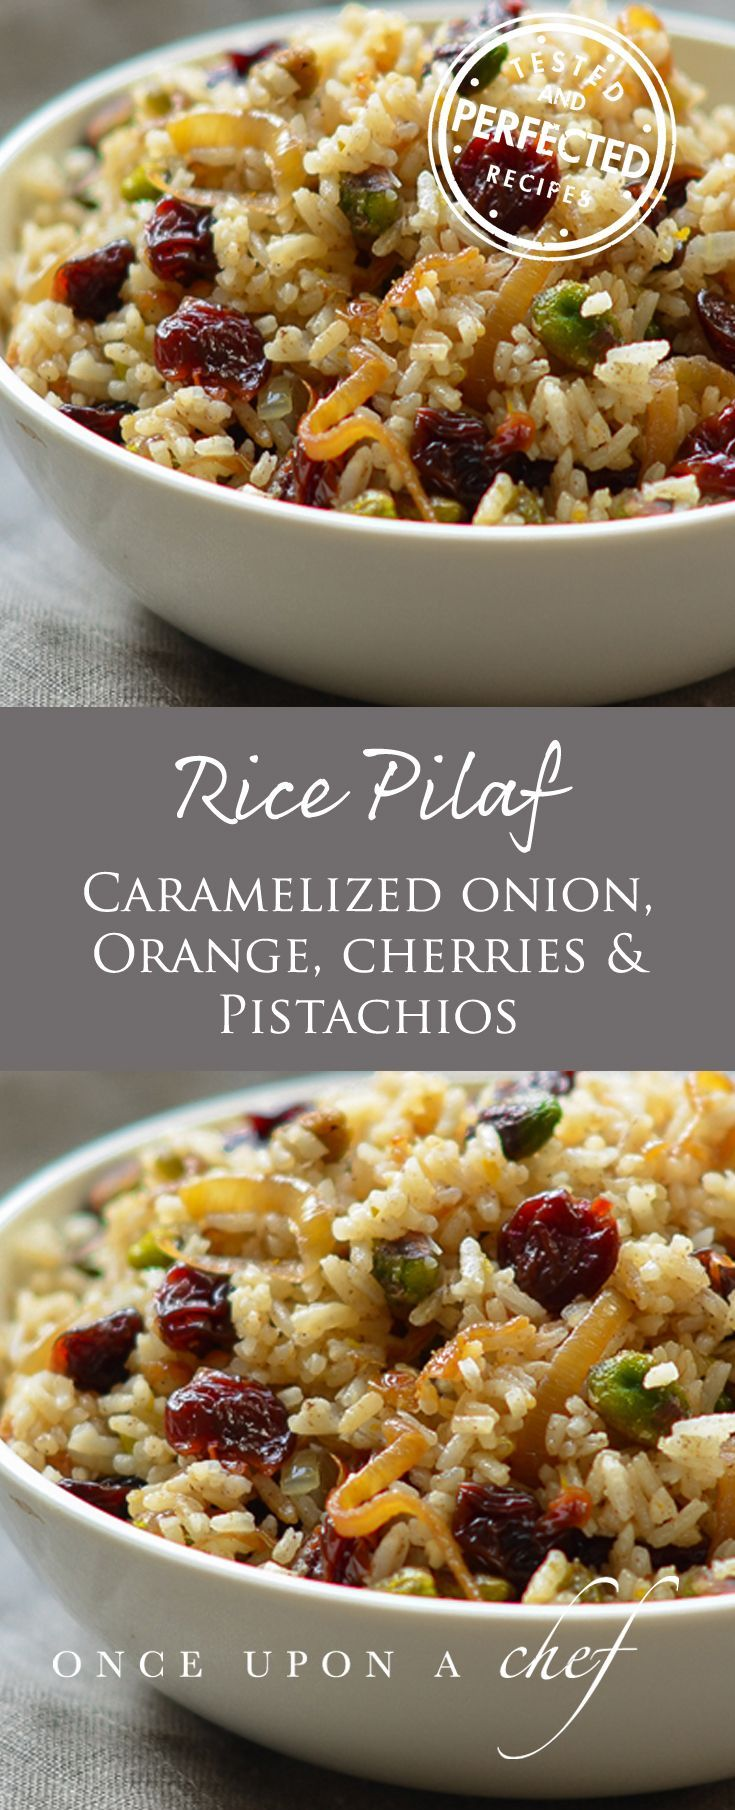 Rice Pilaf with Caramelized Onion, Orange, Cherry & Pistachio #finecooking